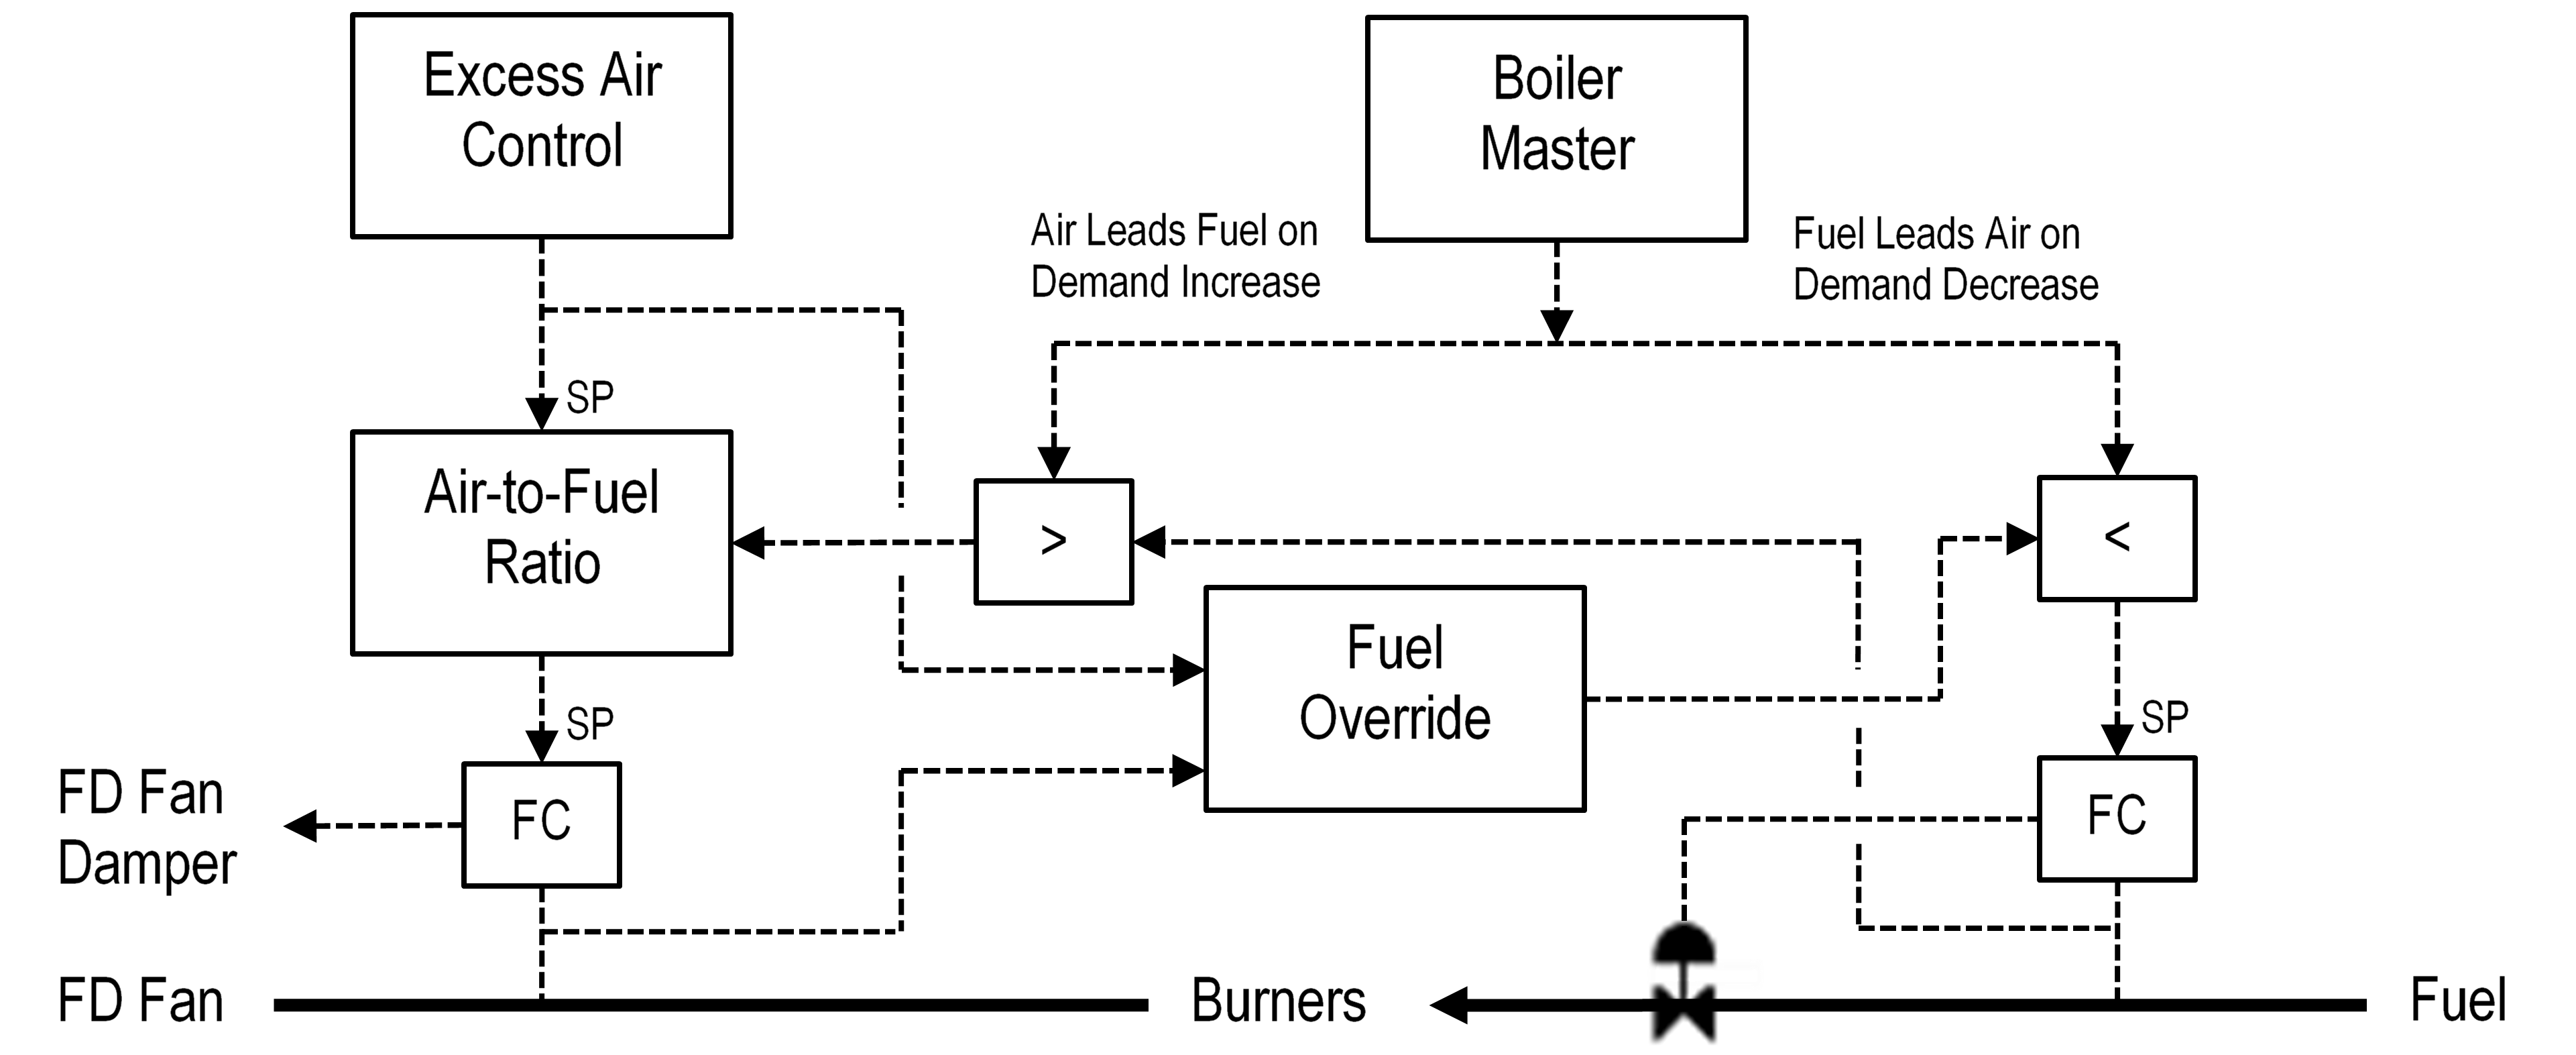 Figure 1 Cross-limiting Combustion Controls